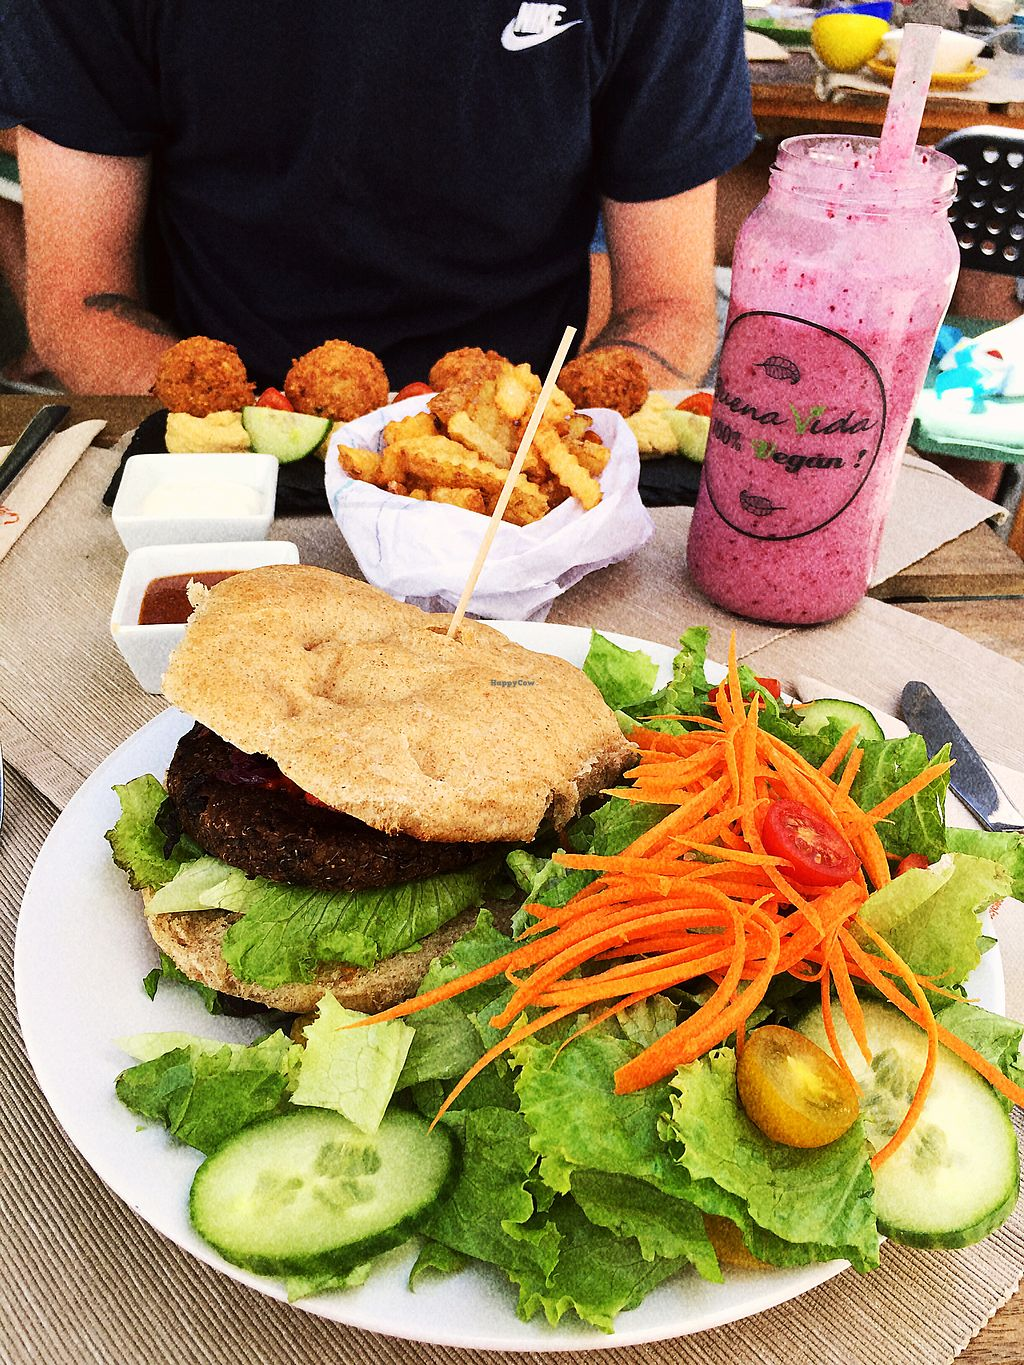 "Photo of Buenavida Vegan  by <a href=""/members/profile/megmate"">megmate</a> <br/>quinoa burger with salad, falafels, chips and wild berry smoothie <br/> August 5, 2017  - <a href='/contact/abuse/image/64893/289195'>Report</a>"